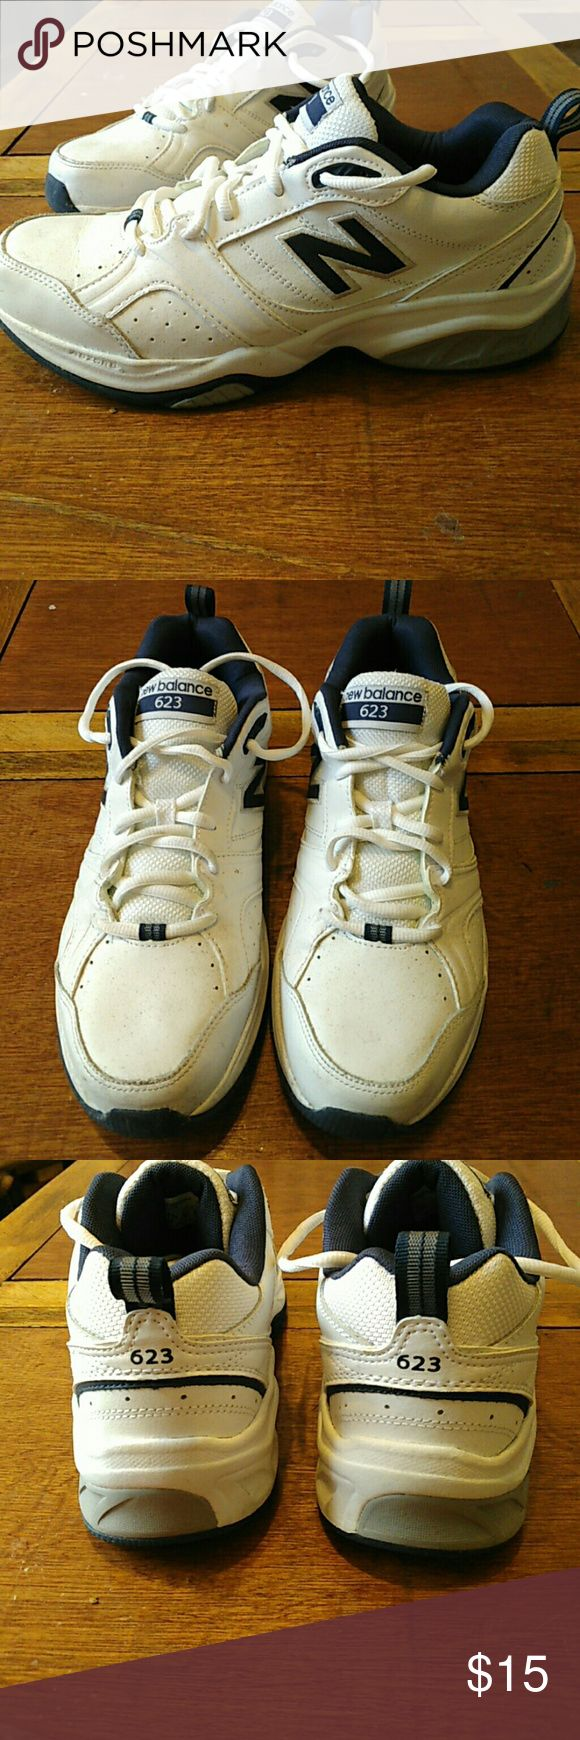 "New Balance 623 White tennis shoes with navy blue ""N"" on the sides and some grey detail on side of sole. Very good shoes and comfortable too! These have been worn once for a few hours, good condition. New Balance Shoes Sneakers"